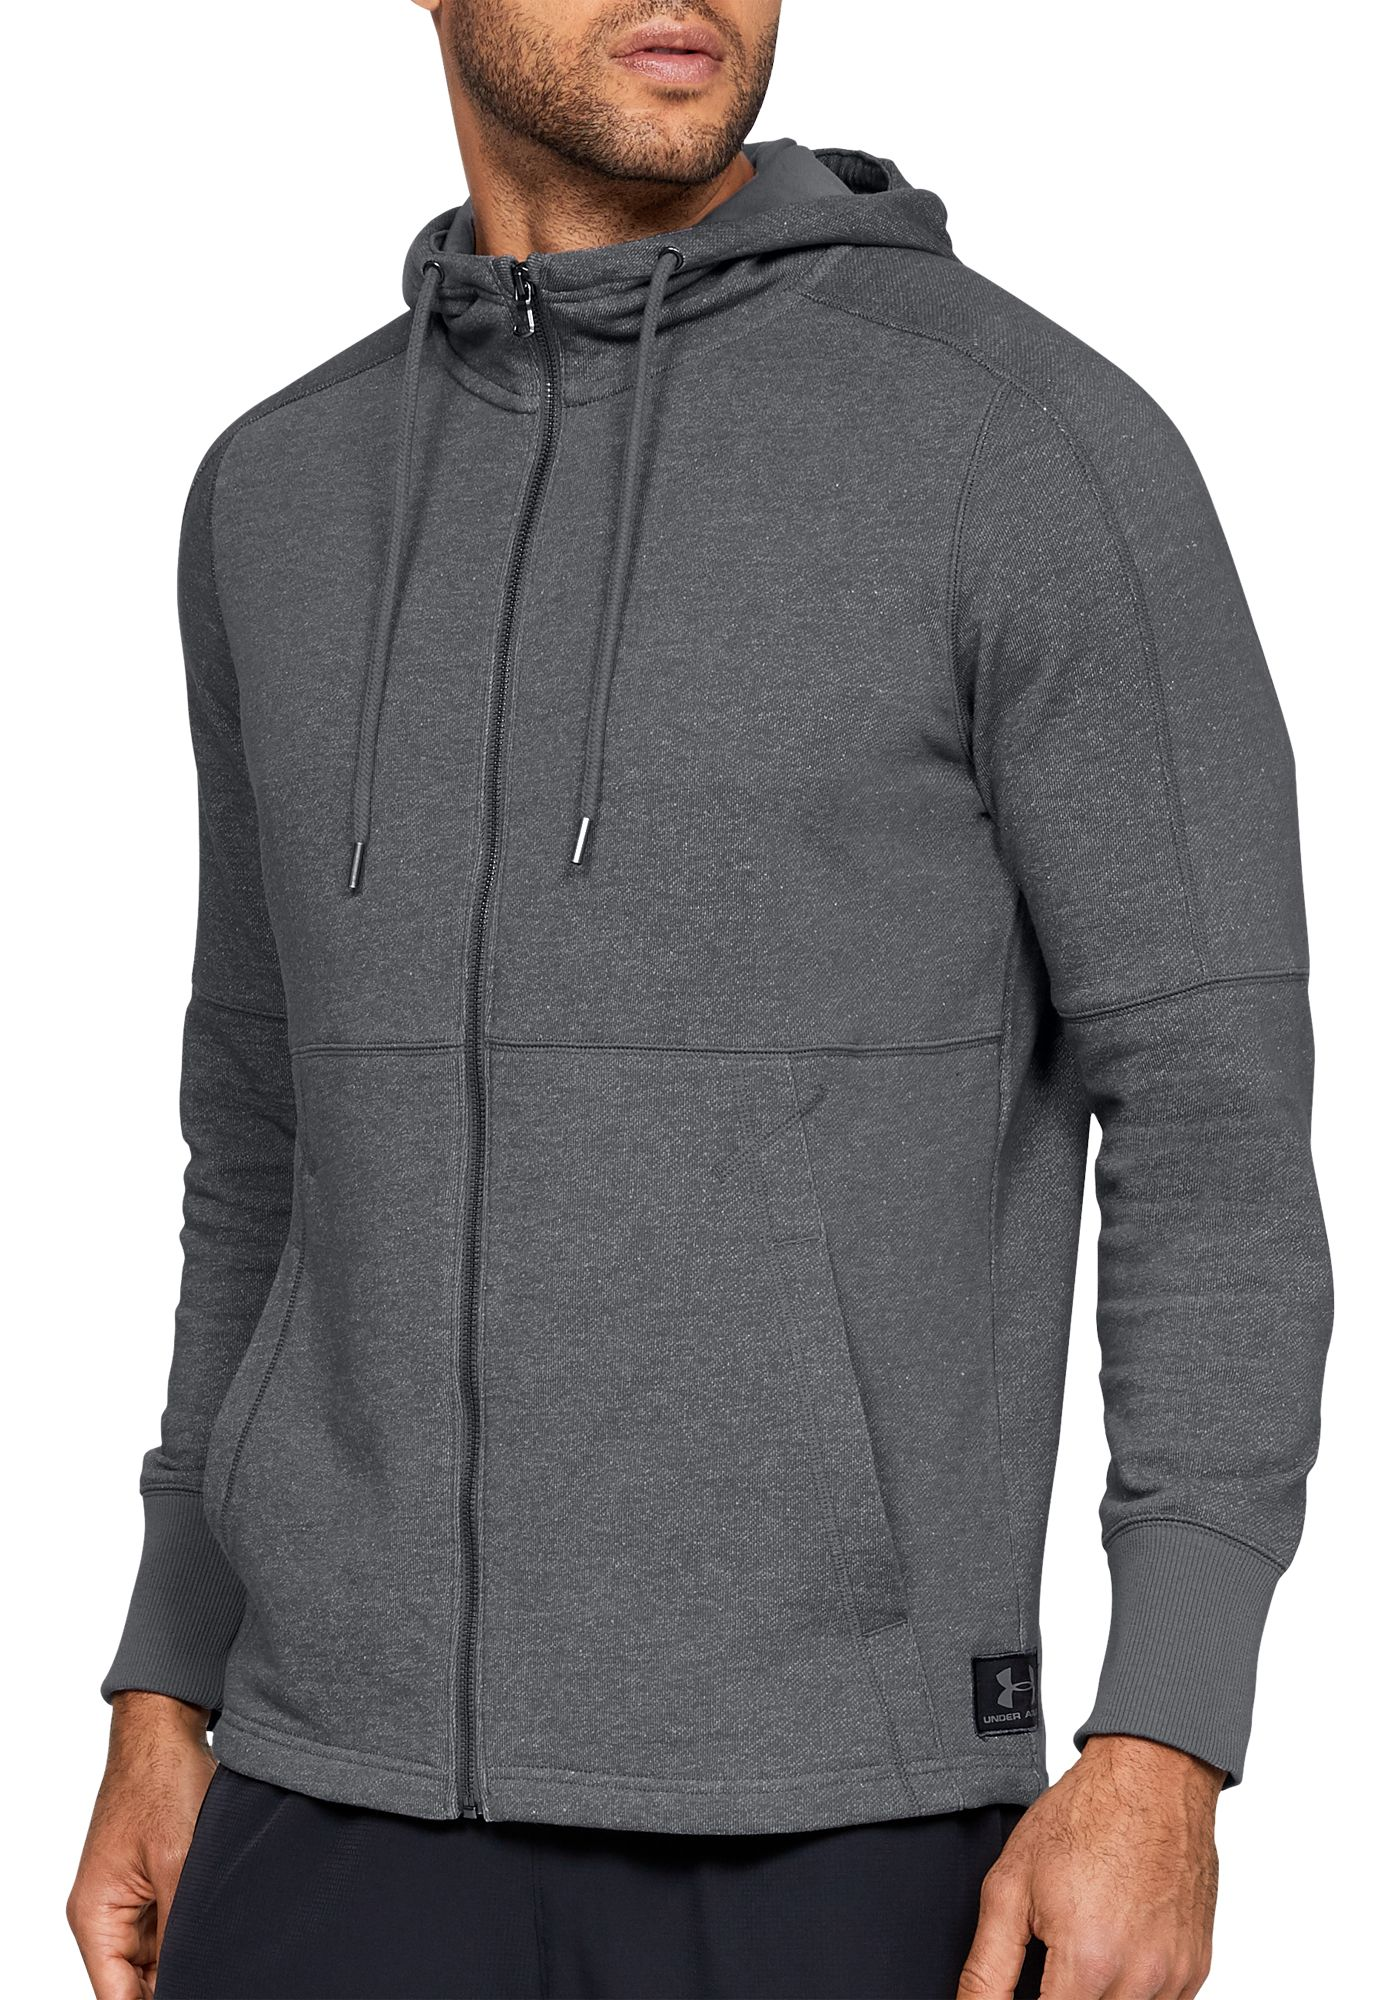 Under Armour Men's Project Rock Hawaii USA Hoodie